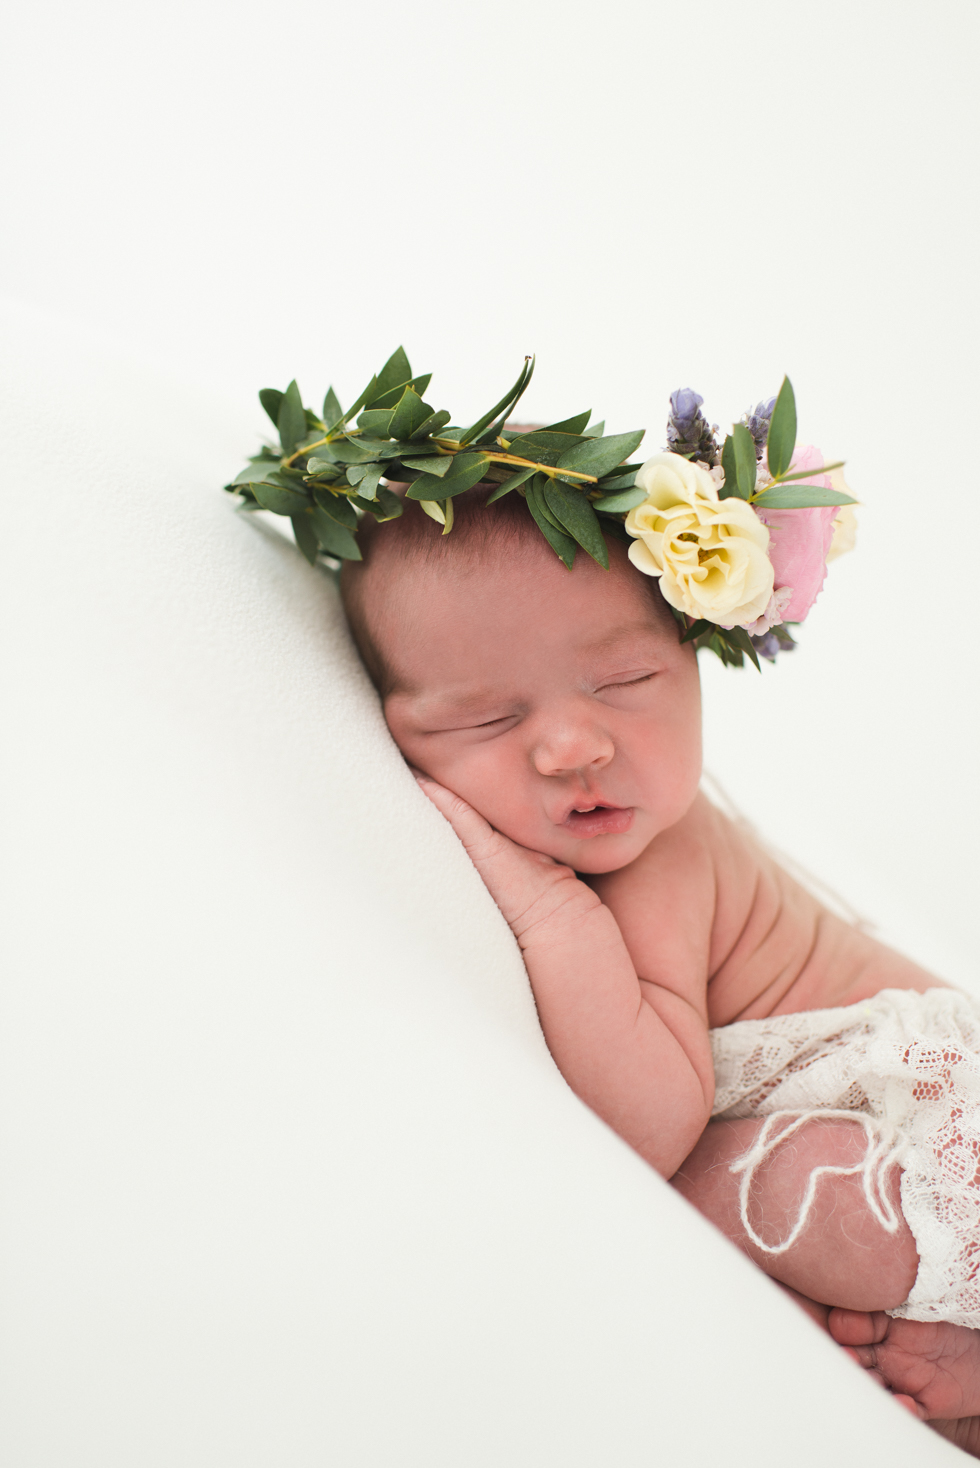 Newborn baby vst george utah newborn photographer b couture b couture photography specializes in luxury newborn baby child motherhood and boudoir photography in st george utah and surrounding areas including izmirmasajfo